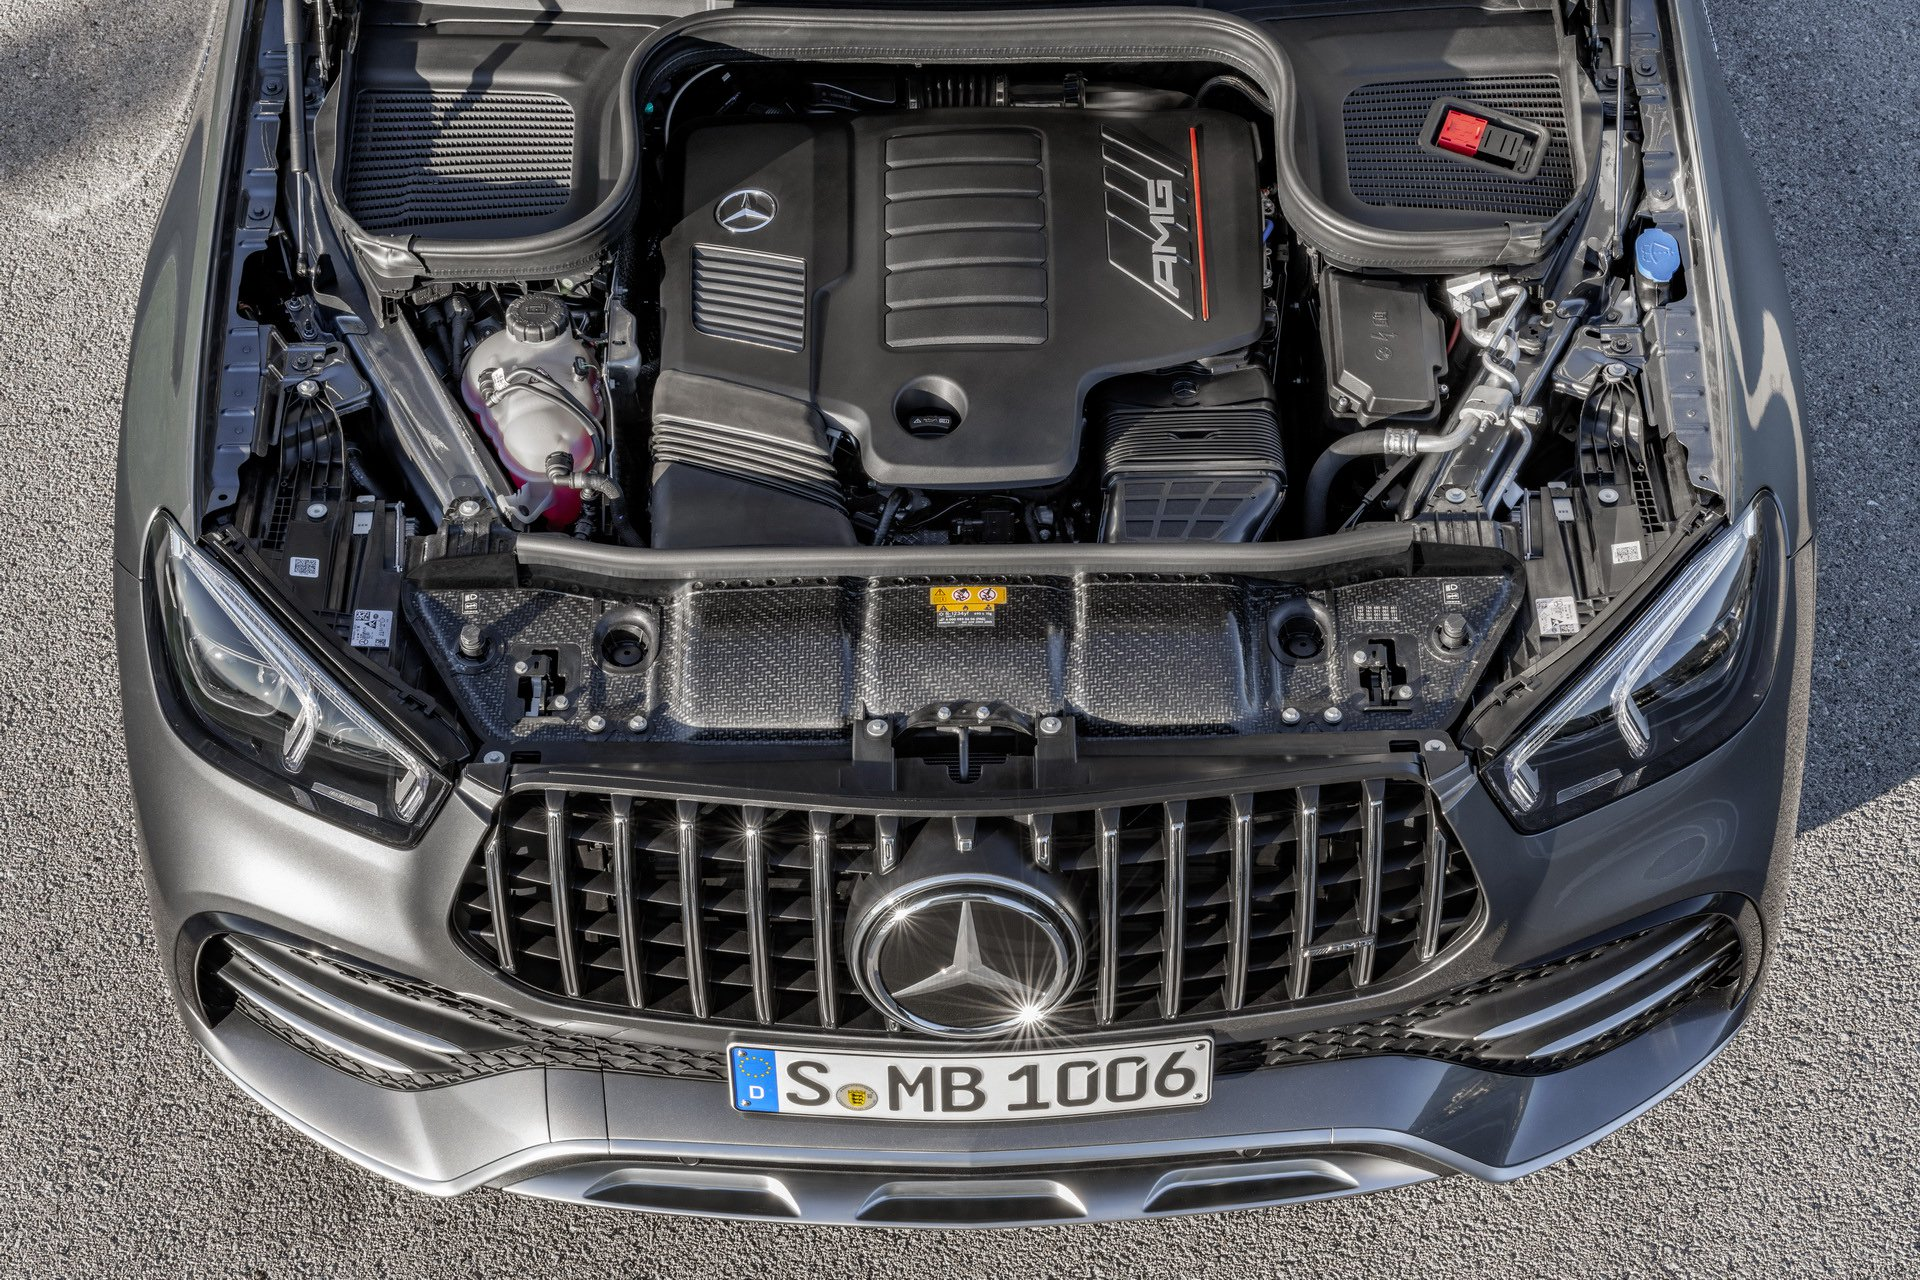 2020 Mercedes-AMG GLE53 4Matic+ powertrain